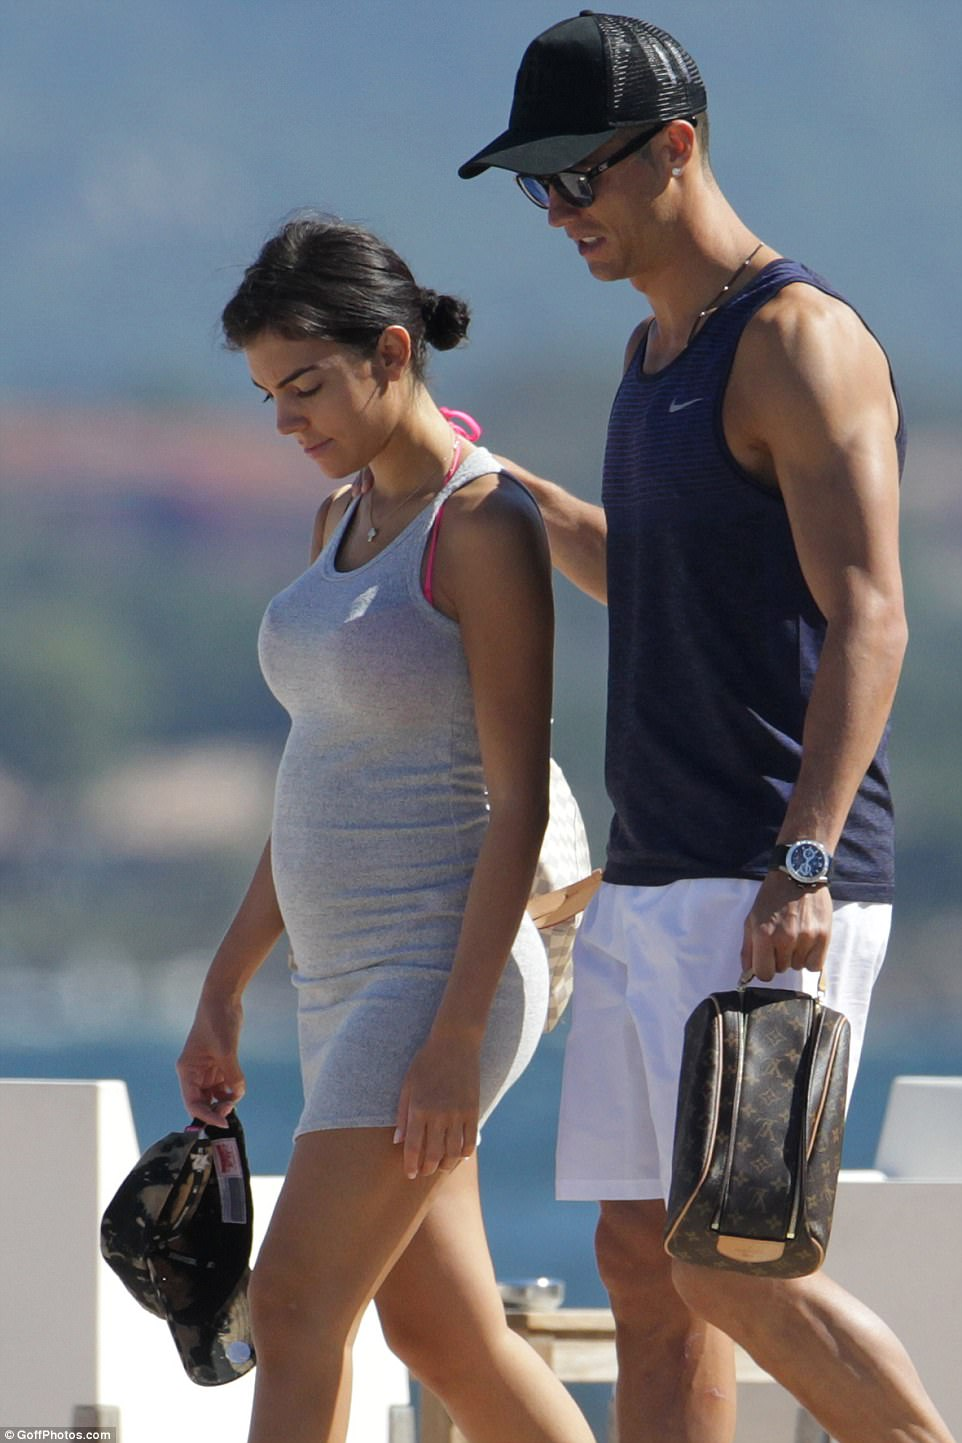 Holiday fun: Cristiano Ronaldo and his girlfriend Georgina Rodriguez looked besotted with one another as they enjoyed a sunny day together in Corsica this week